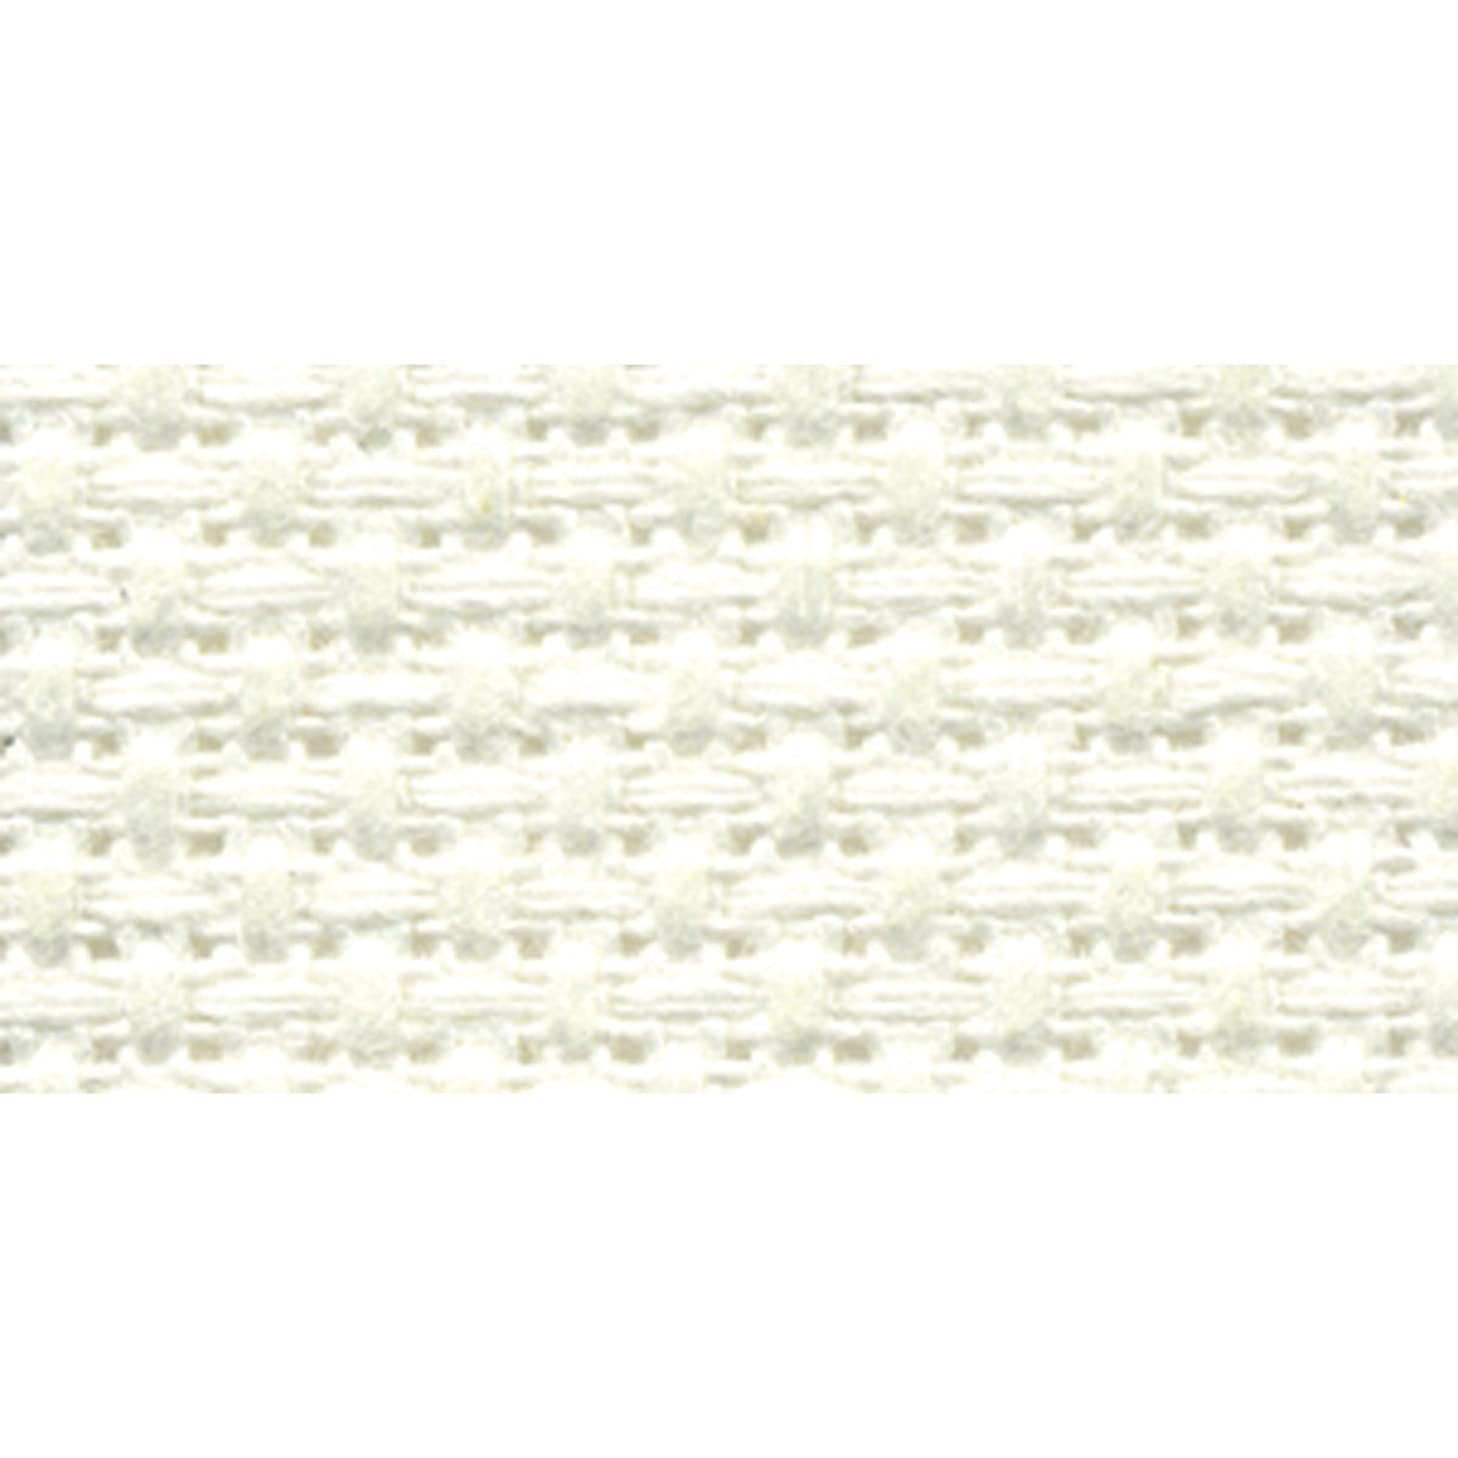 DMC TC8136-0322 Silver Label Aida Cloth with Soft Tube, Antique White, 15 by 18-Inch, 11-Count